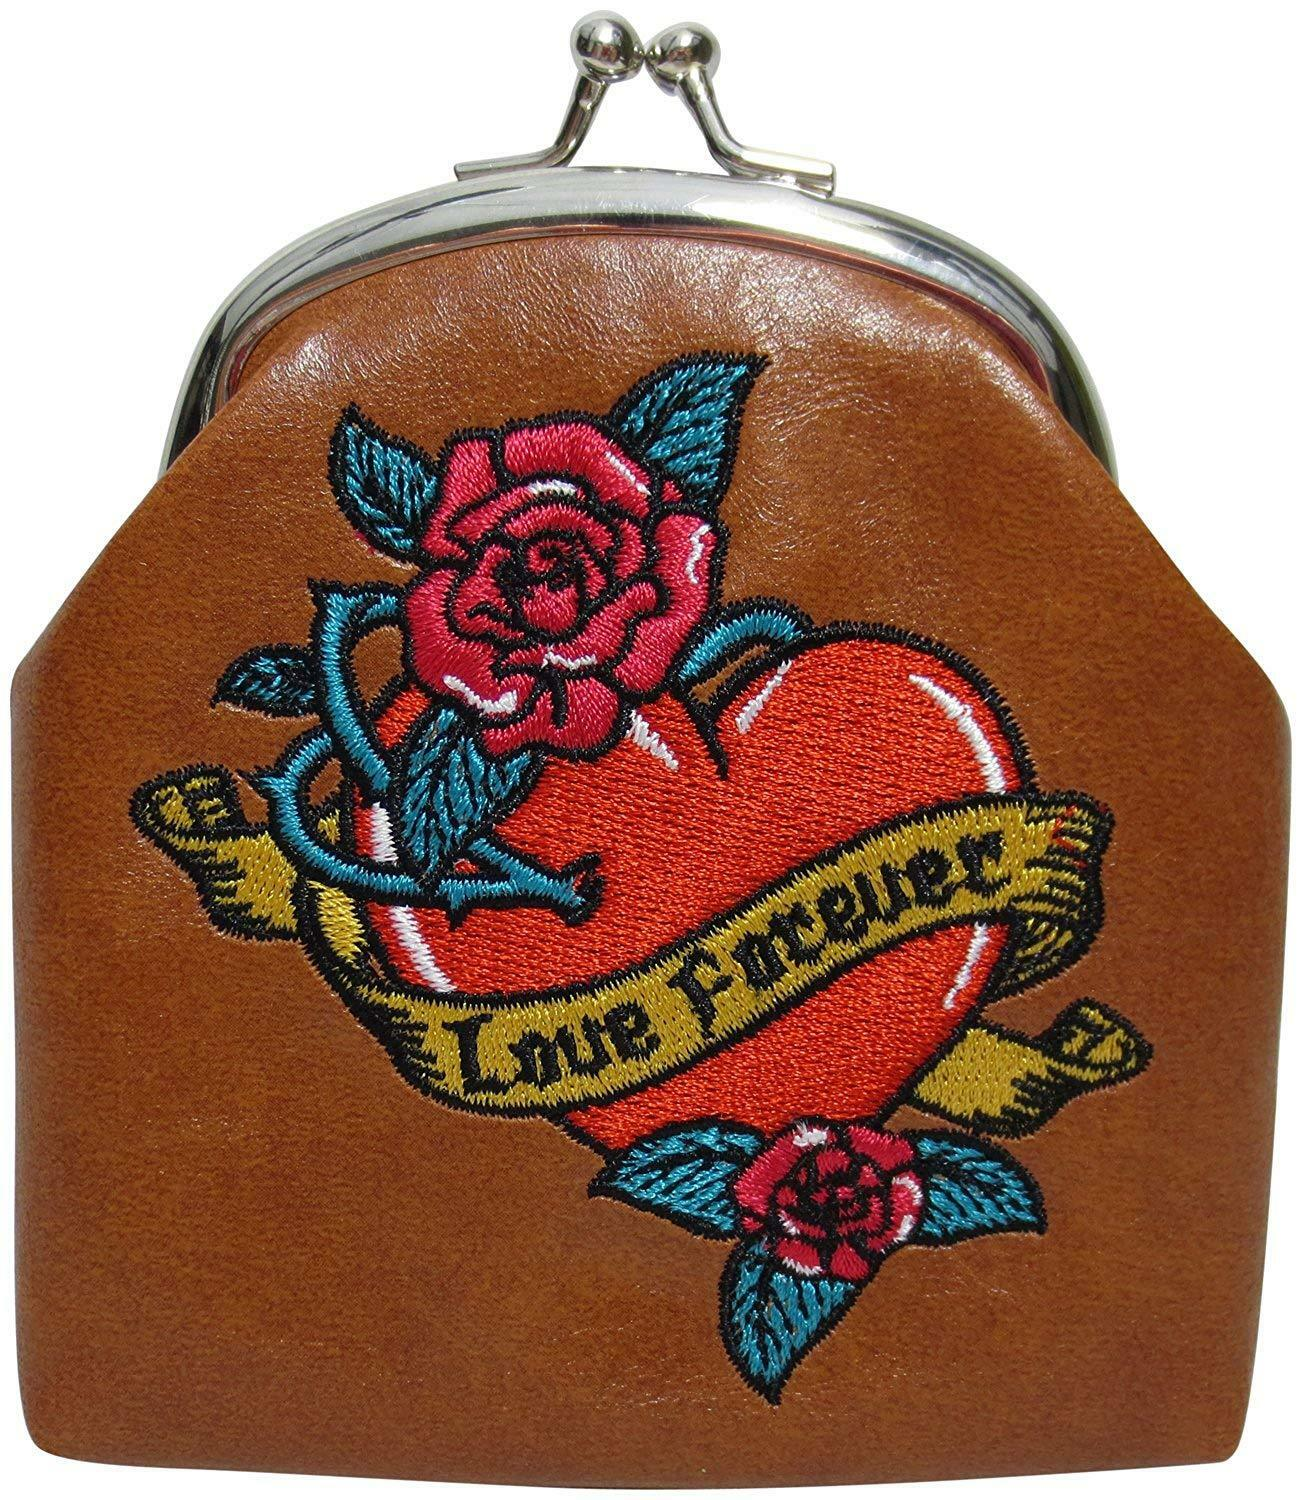 Lavishy Love Forever Heart Roses with Tattoo Swallow Birds Coin Purse